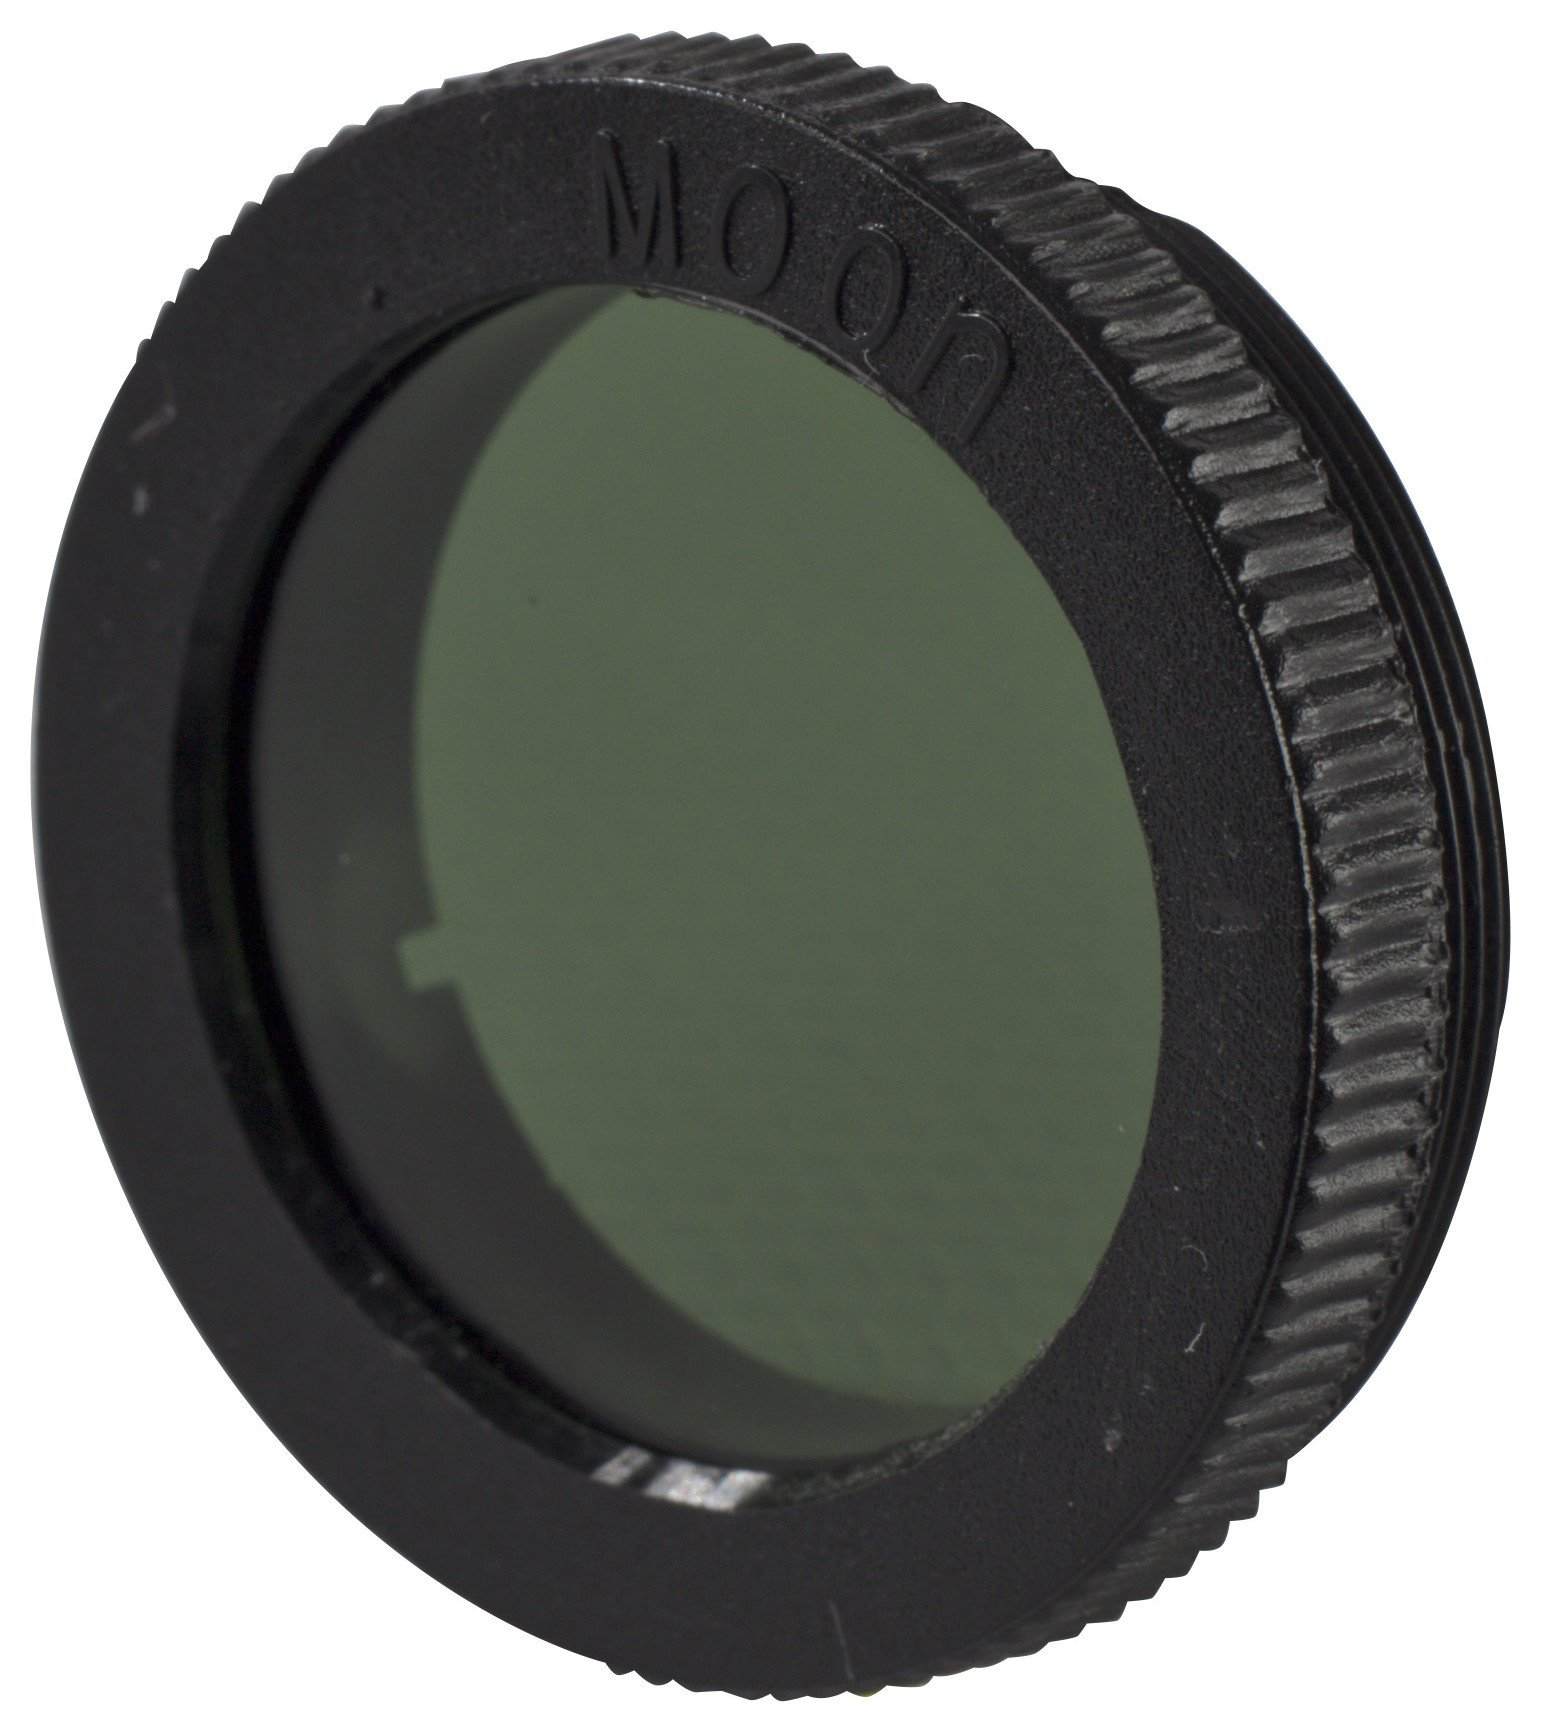 Celestron Moon Telescope Filter